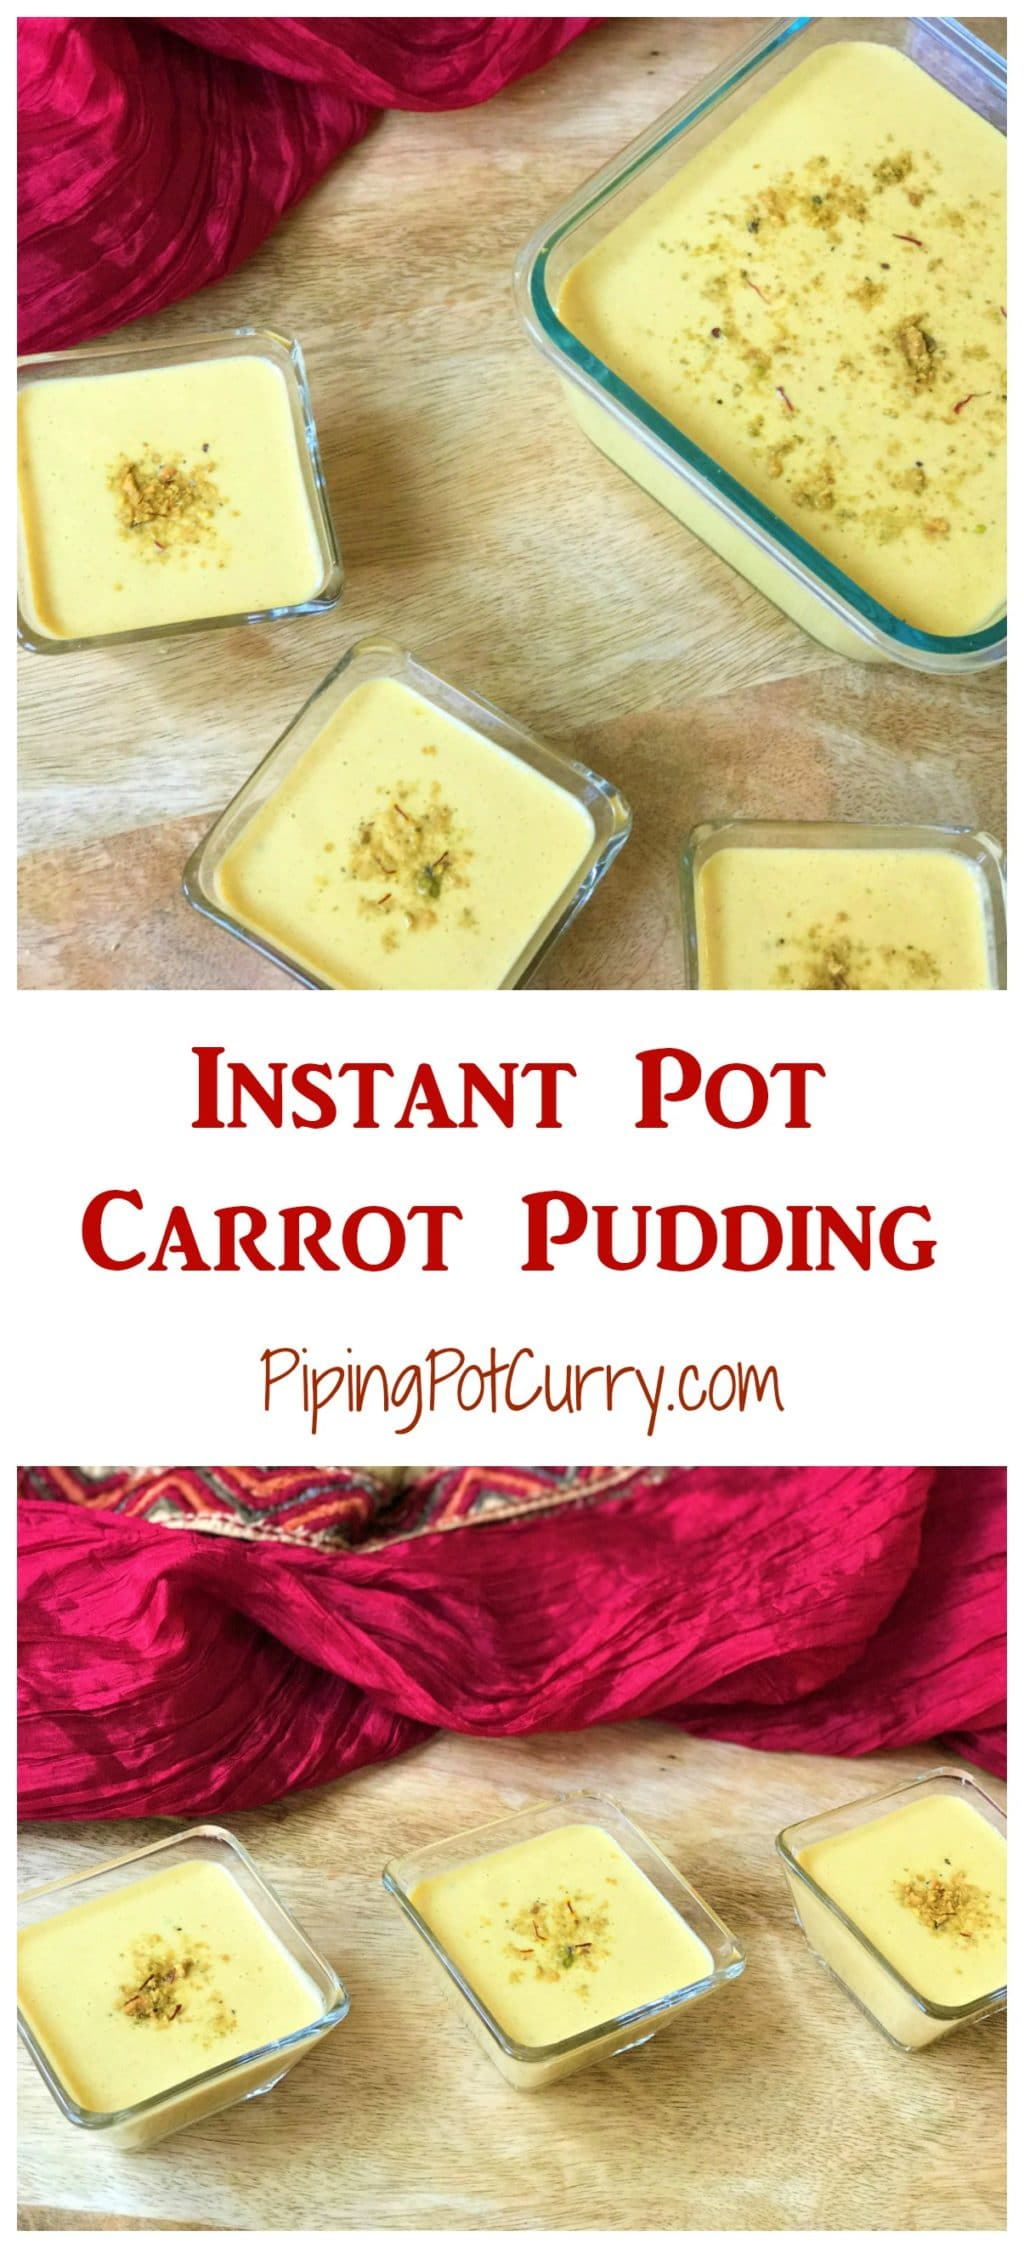 Want a delicious, healthy and quick dessert? This is the best Carrot Pudding you will ever make in your #instantpot. Made with #carrots #milk #cashews and #dates with the added aroma of #cardamom & #saffron. With no added sugar, you would not mind second and third servings! #kheer #payasam #pudding #healthy #dessert #indian #easy #instantpot #pressurecooker #vegetarian #glutenfree | pipingpotcurry.com